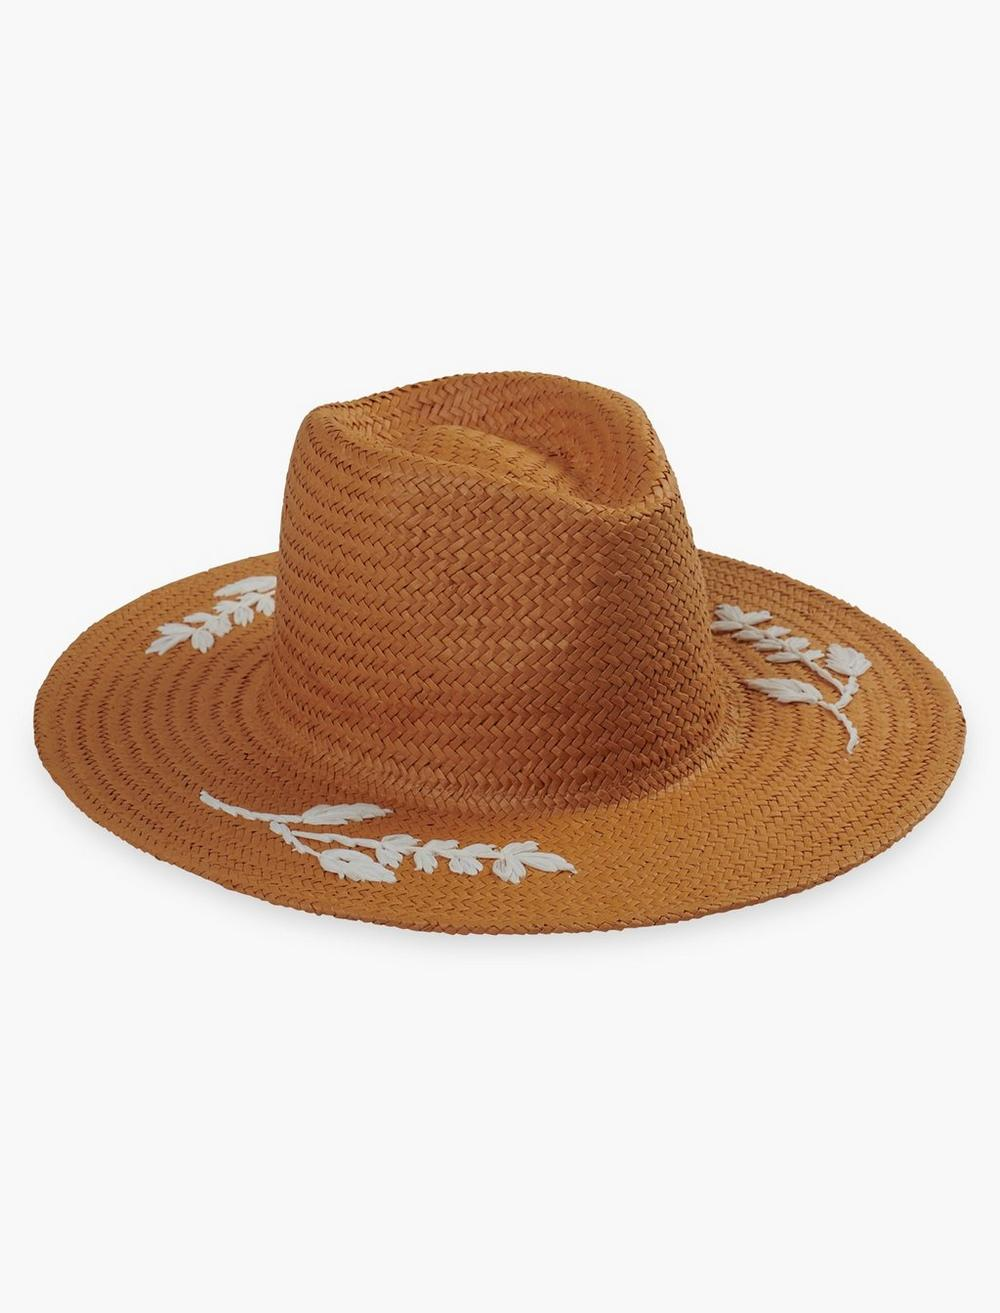 Hippie Hats,  70s Hats Lucky Brand Floral Embroidered Straw Hat Size One in Natural $37.48 AT vintagedancer.com